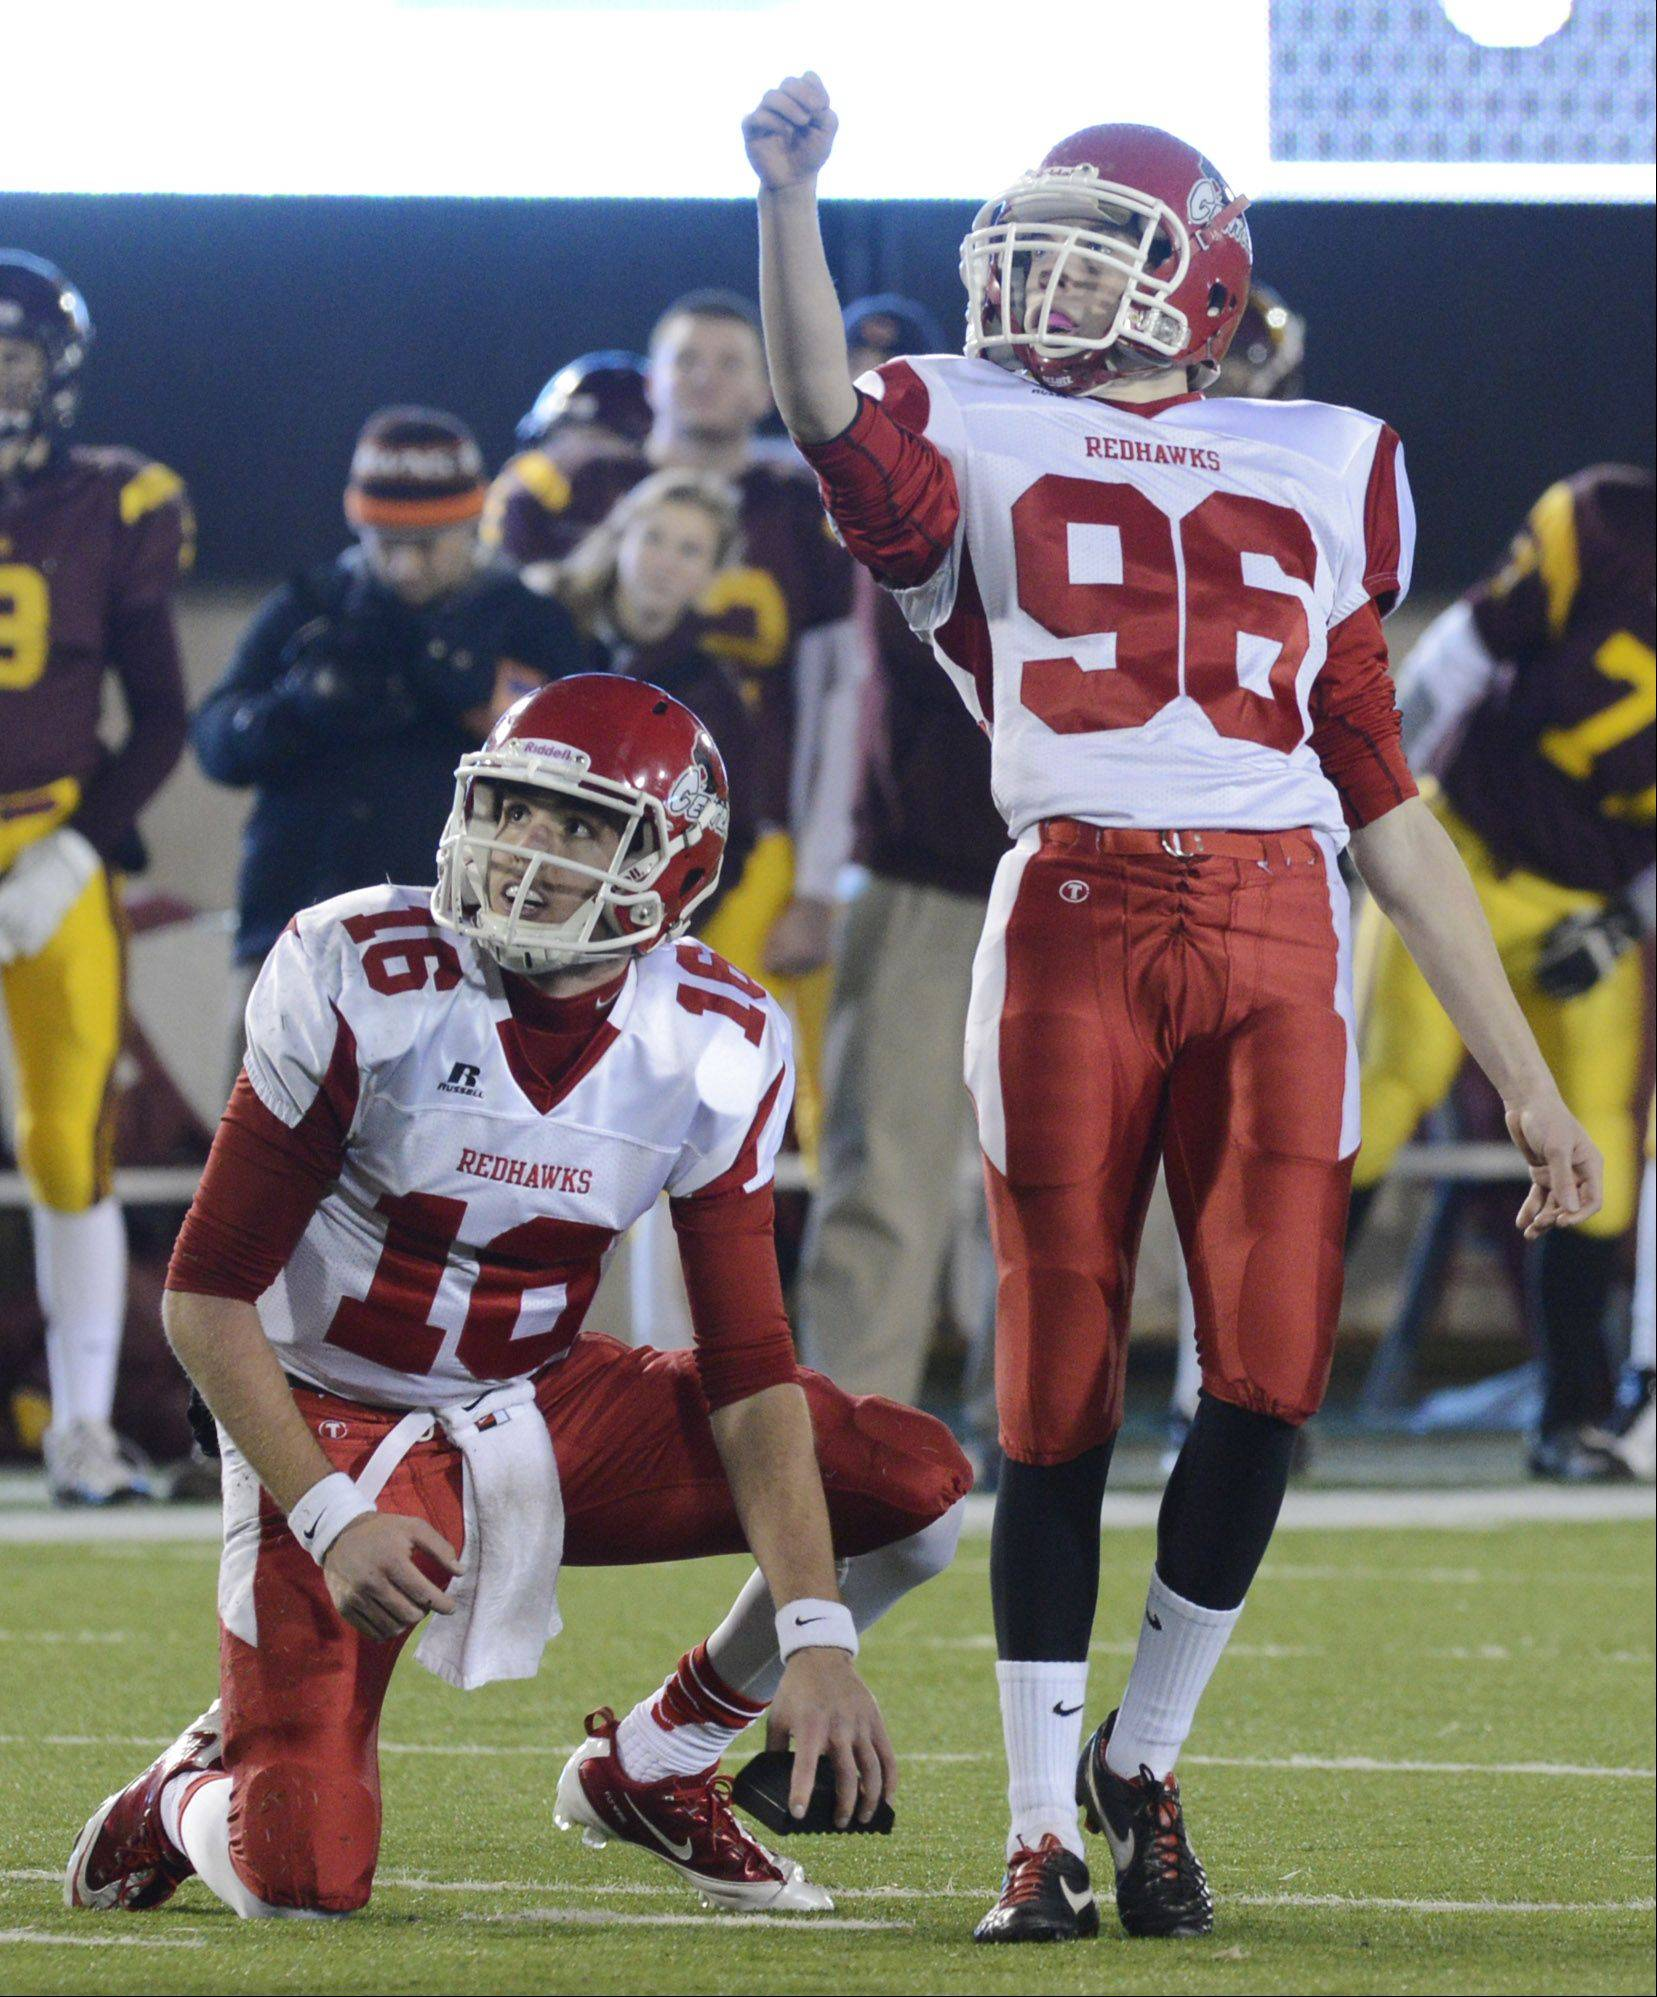 Naperville Central's Connor Assalley and holder Jacob Kolbe watch the flight of their team's first-quarter field goal during the class 8A football final in DeKalb Saturday.